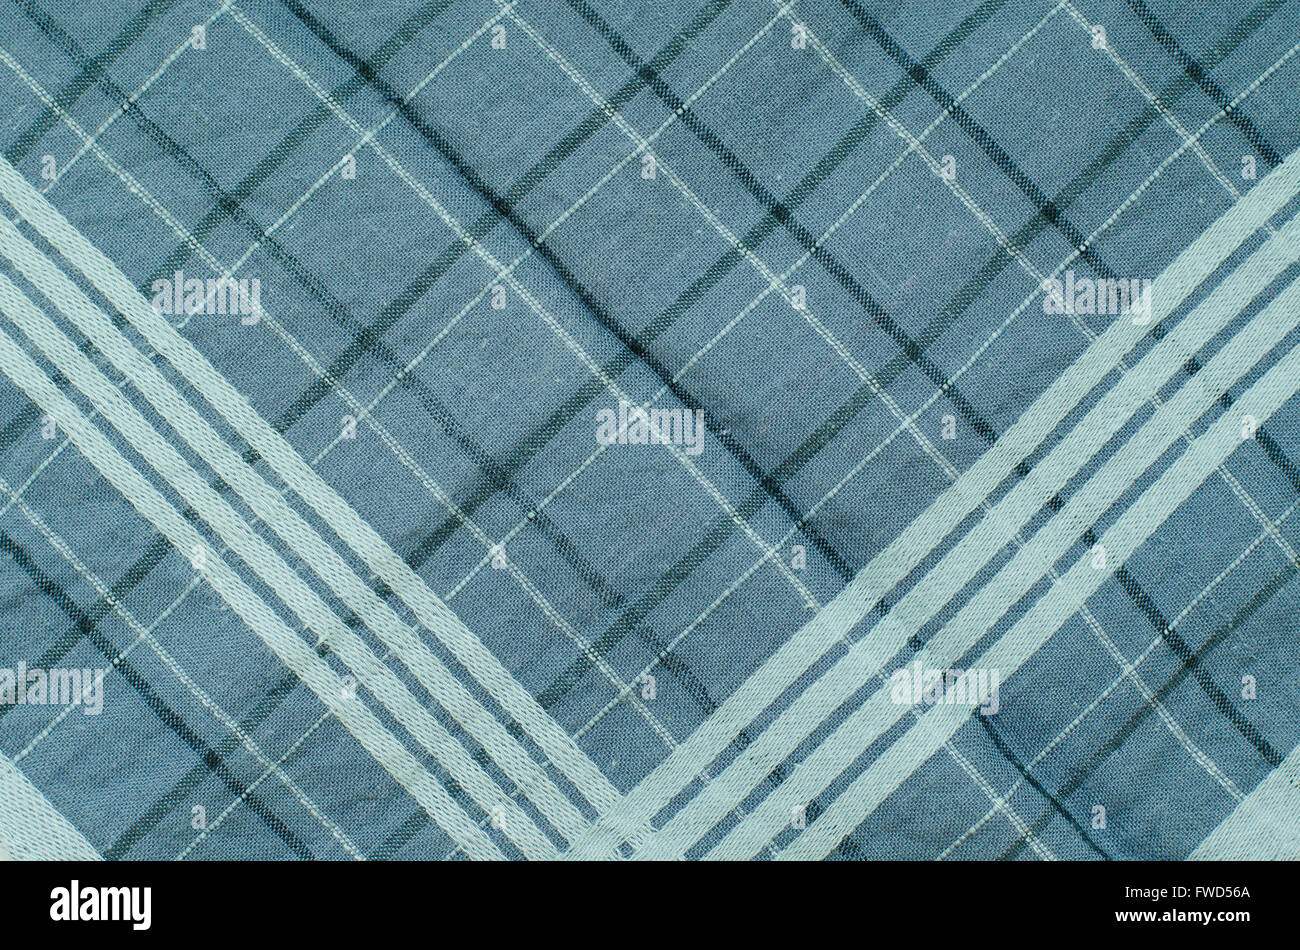 Texture of Blue Gingham Fabric. - Stock Image